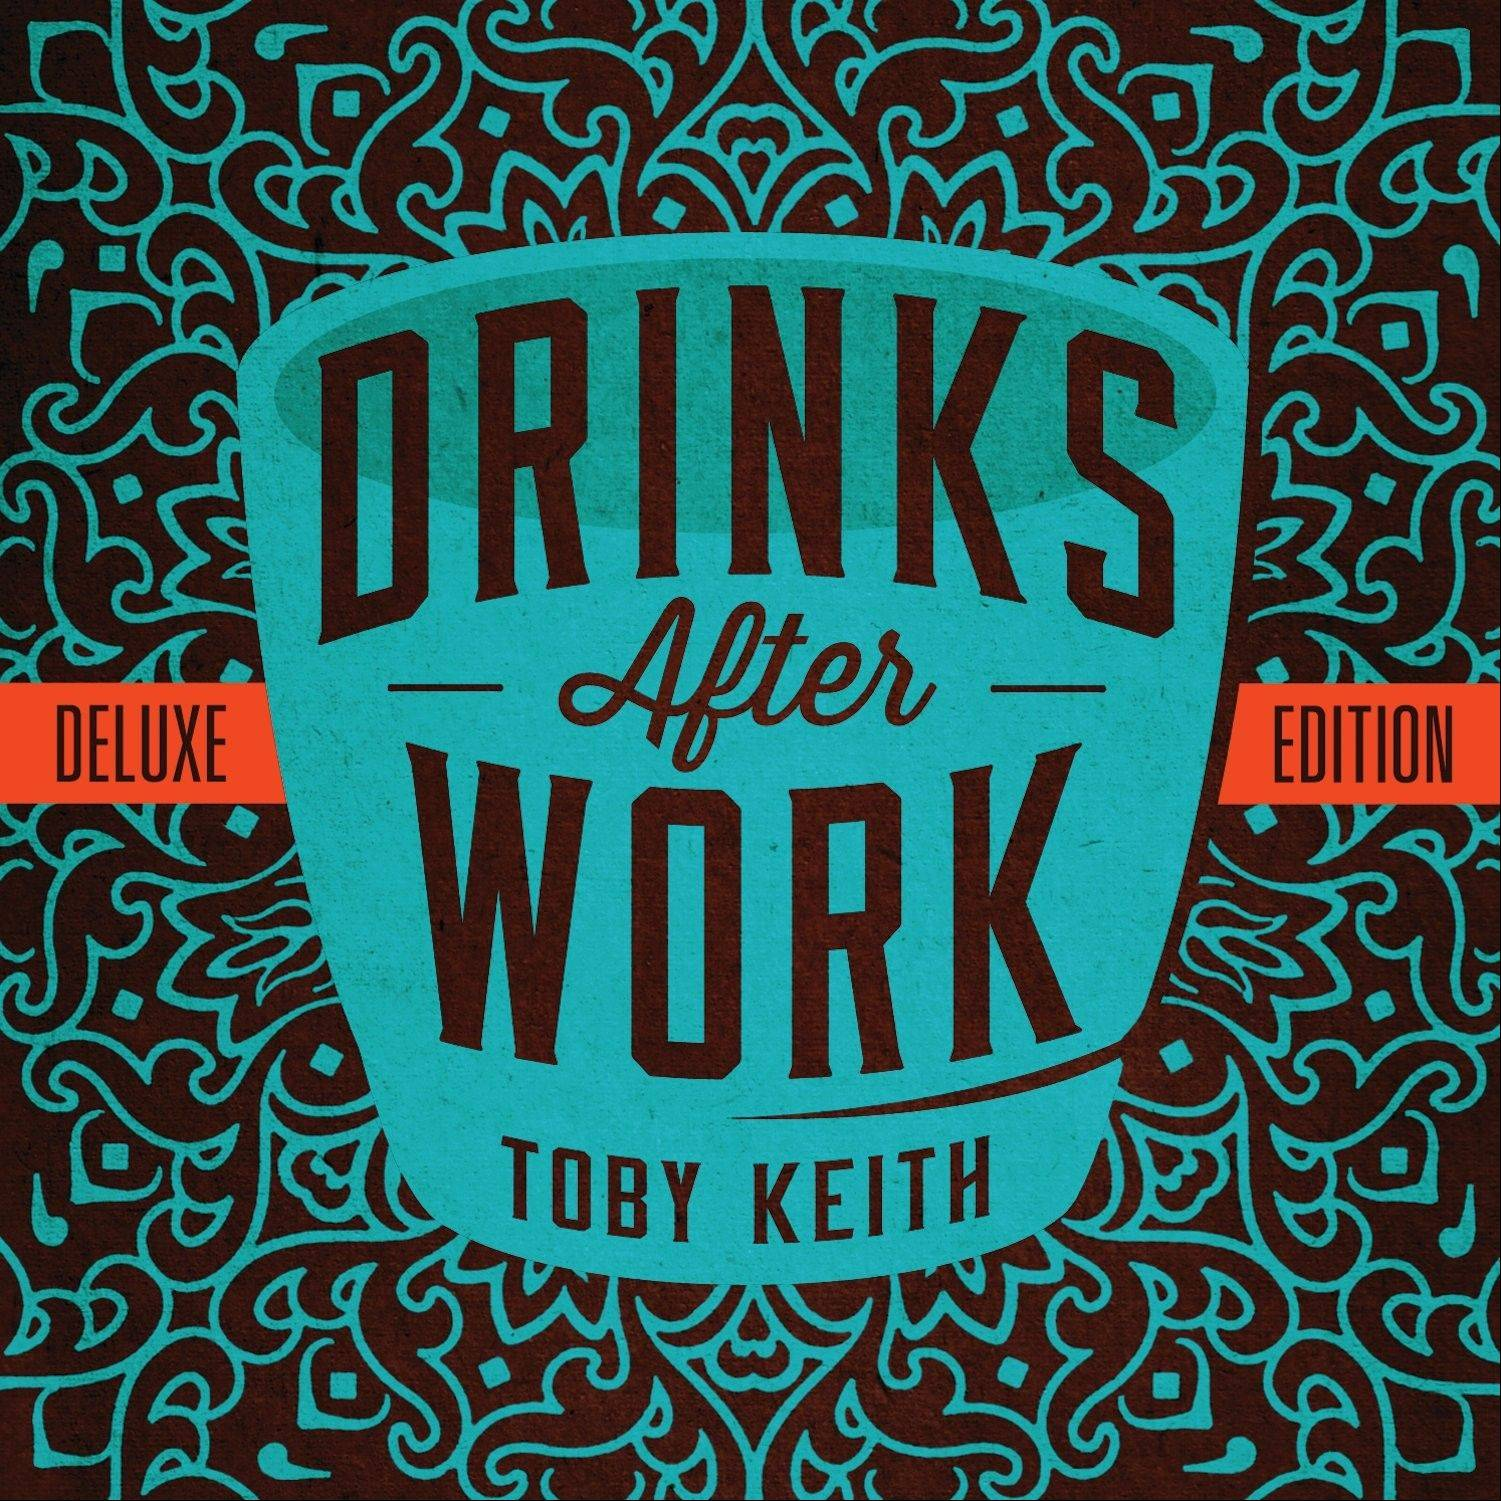 """Drinks After Work,"" the latest release by Toby Keith, shows he's still at the top of his game."